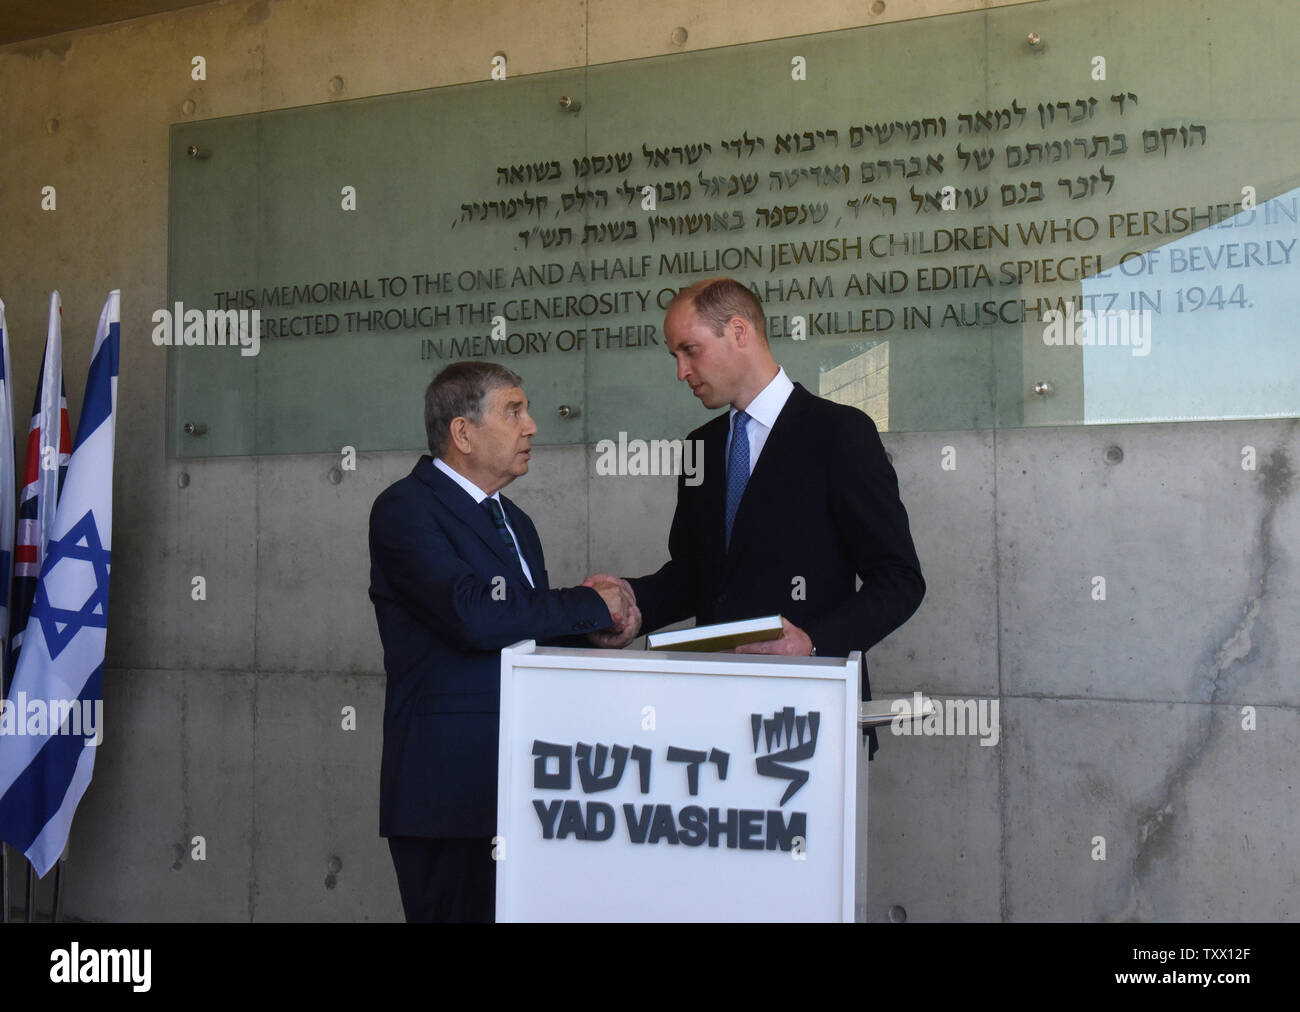 Prince William, the Duke of Cambridge, shake hands with the Chairman of Yad Vashem Avner Shalev, after signing the guest book of Yad Vashem, the World Holocaust Remembrance Center, in Jerusalem, Israel, June 26, 2018.  Photo by Debbie Hill/UPI - Stock Image